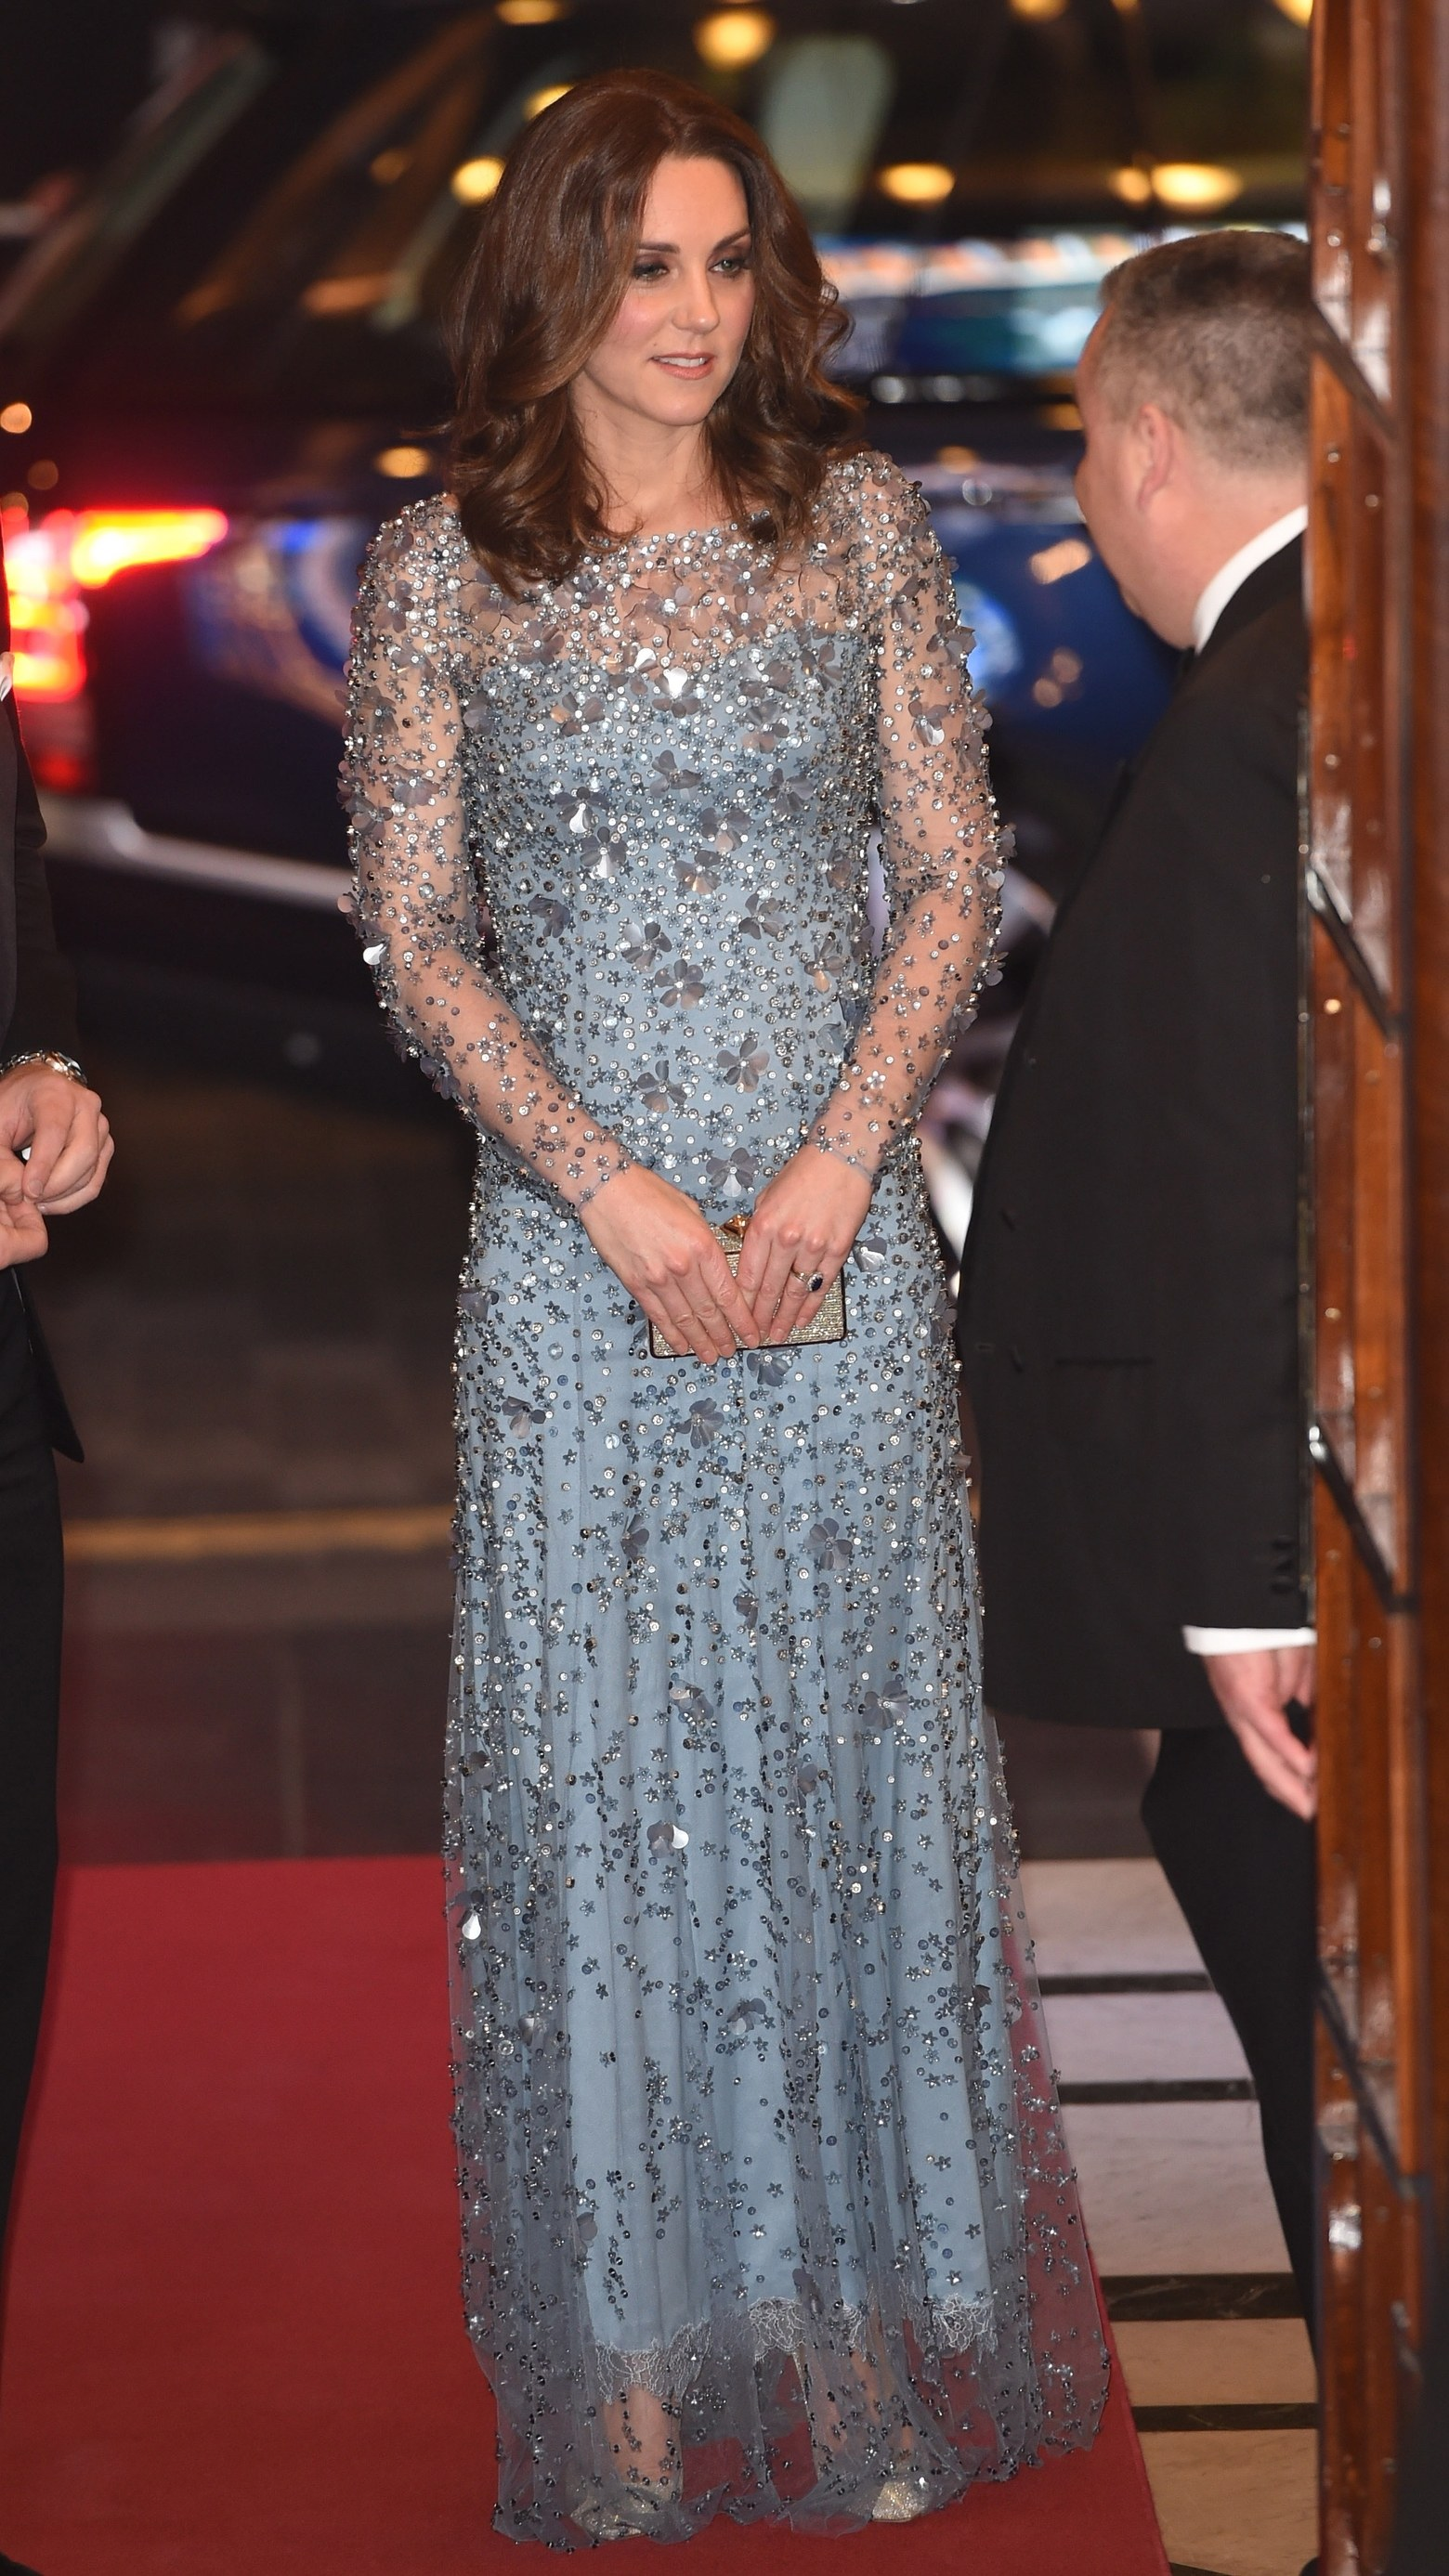 Kate Middleton wore a sparkling, embroidered Jenny Packham gown to the Royal Variety Show.